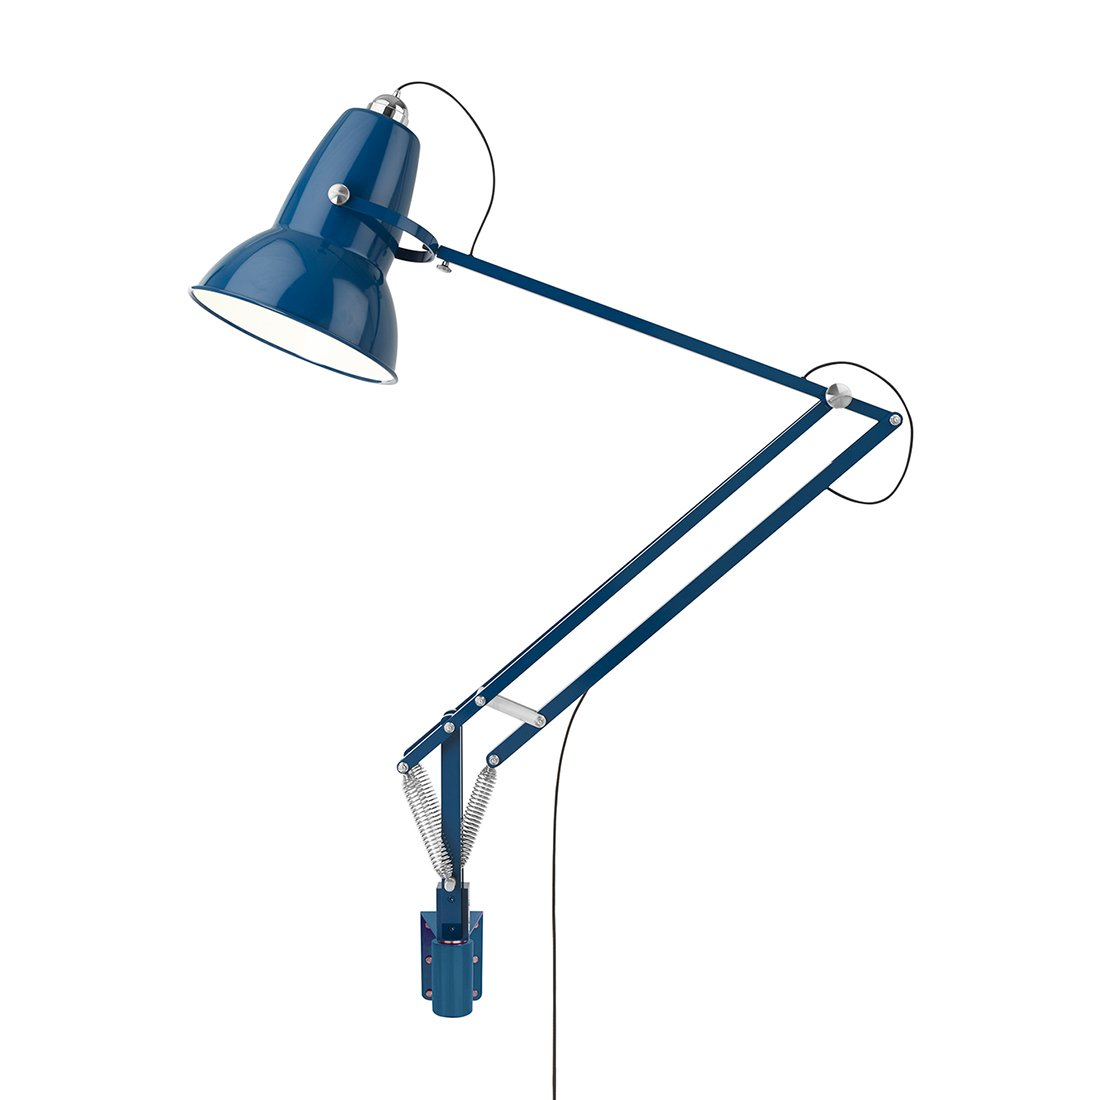 Anglepoise Original 1227 Giant Outdoor Wall Mounted Marine Blue Wandlamp